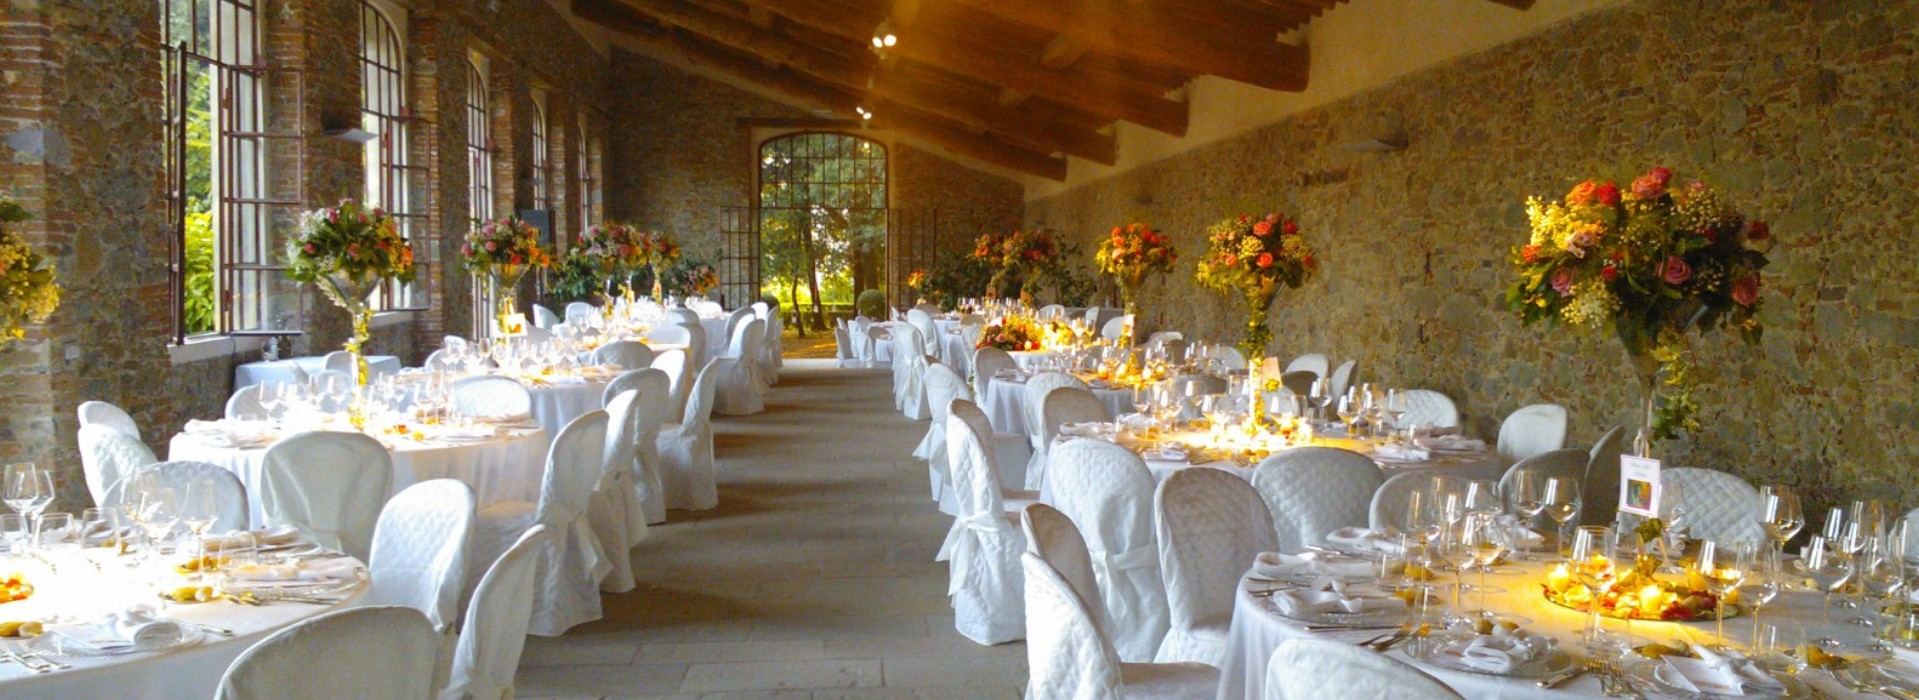 Location Matrimonio Toscana Economici : Matrimoni lucca eventi in villa location toscana